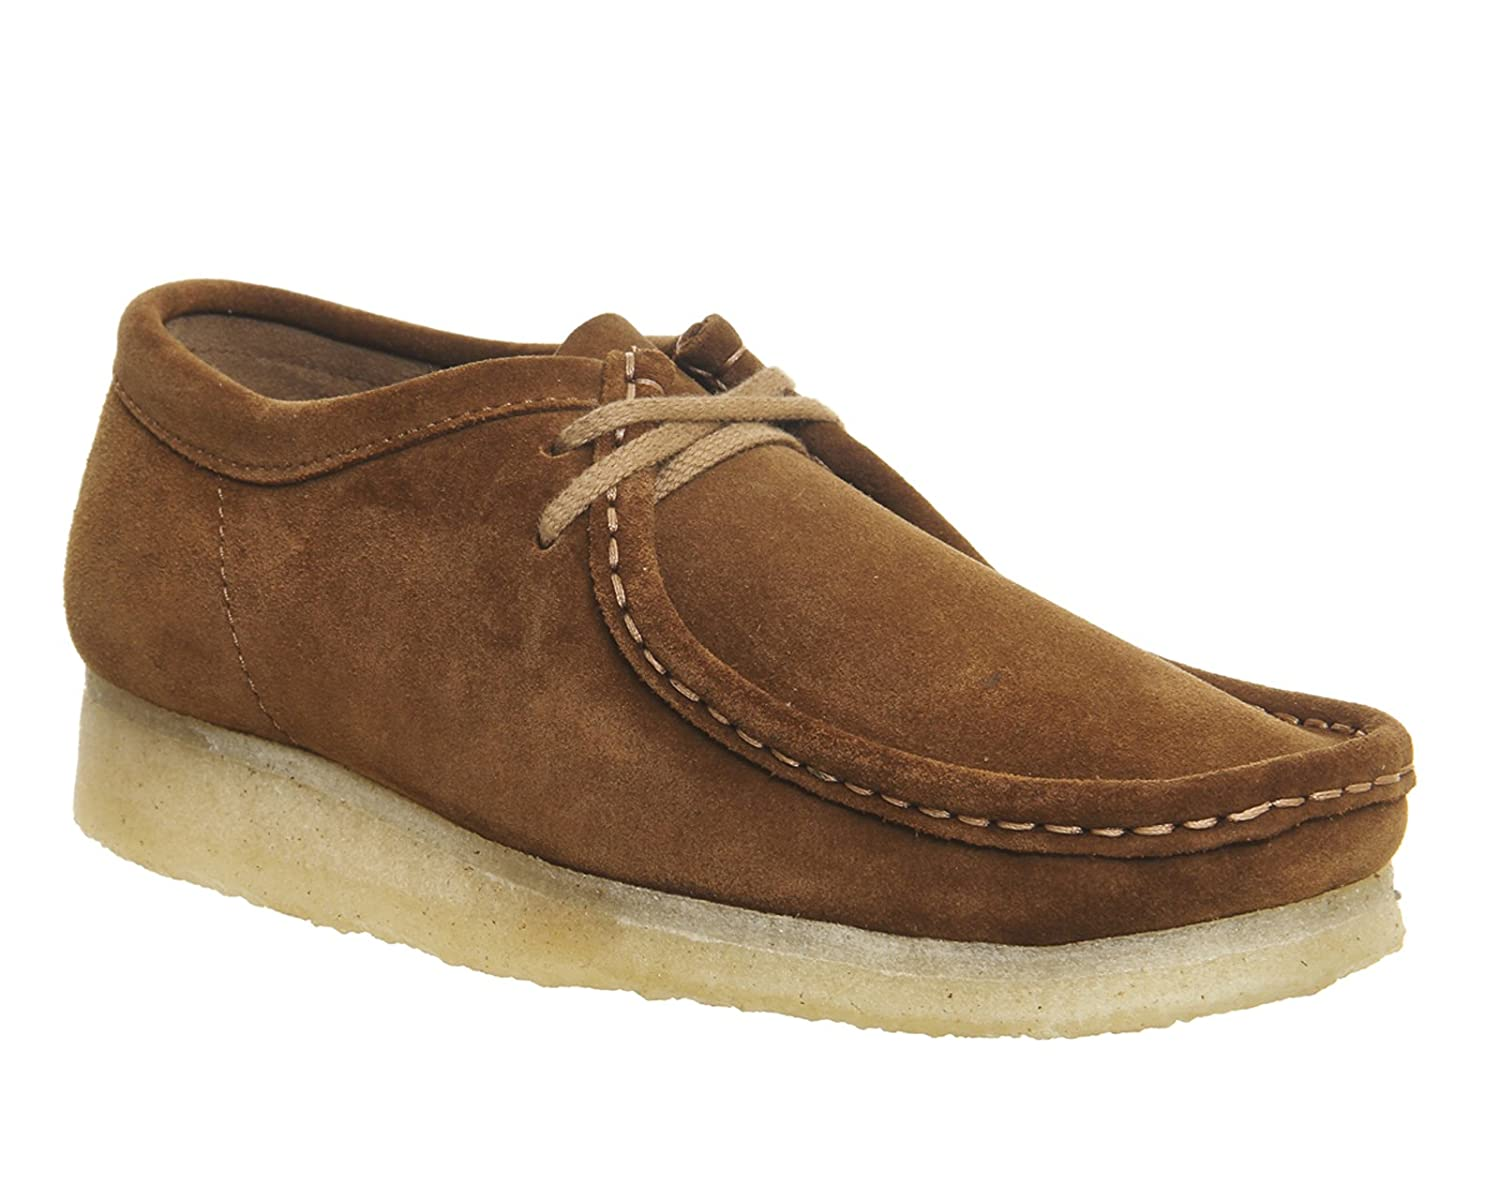 Clarks, Marrone COLA BROWN SUEDE: Amazon.it: Scarpe e borse